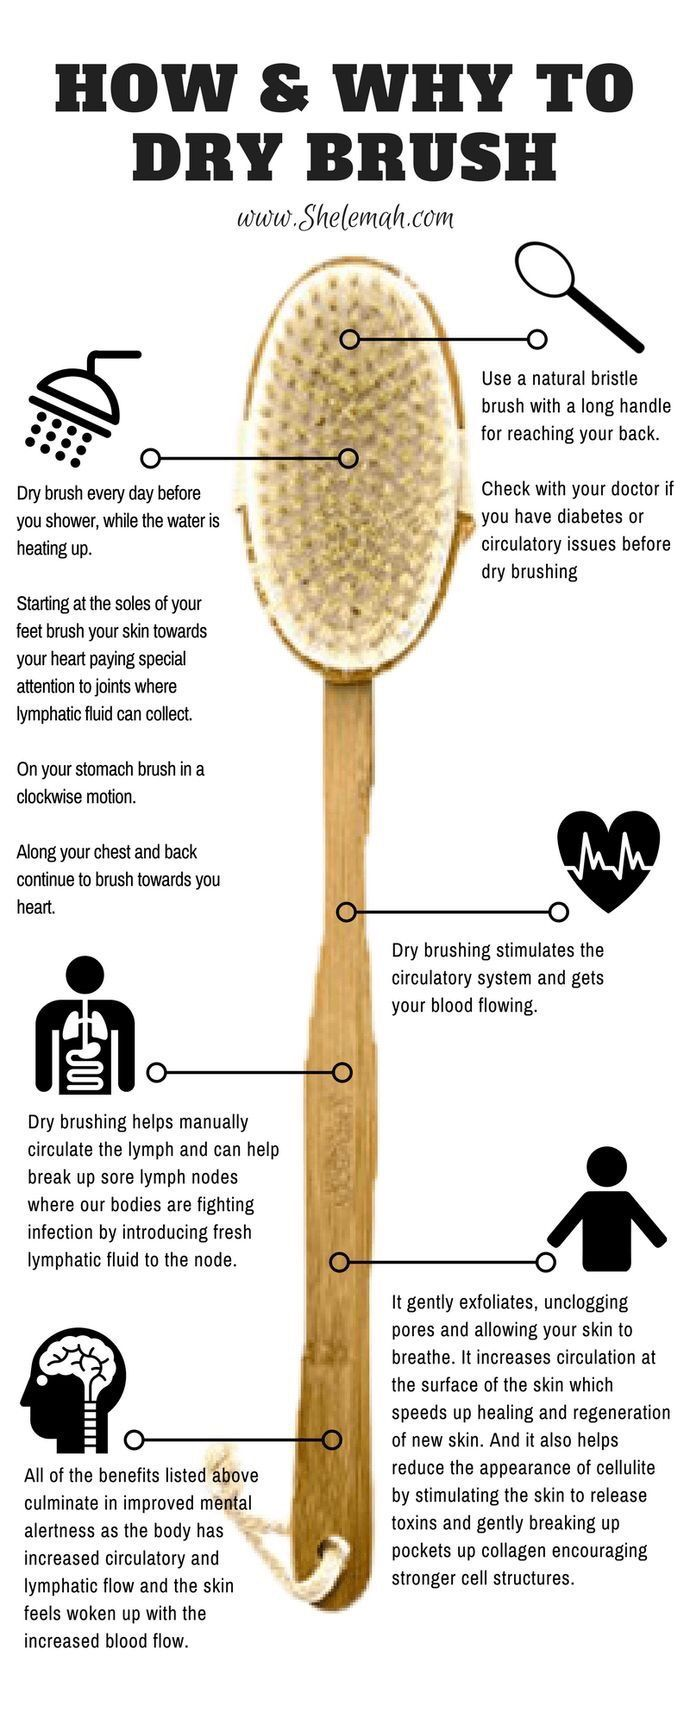 Benefits Of Dry Brushing Exfoliates The Skin By